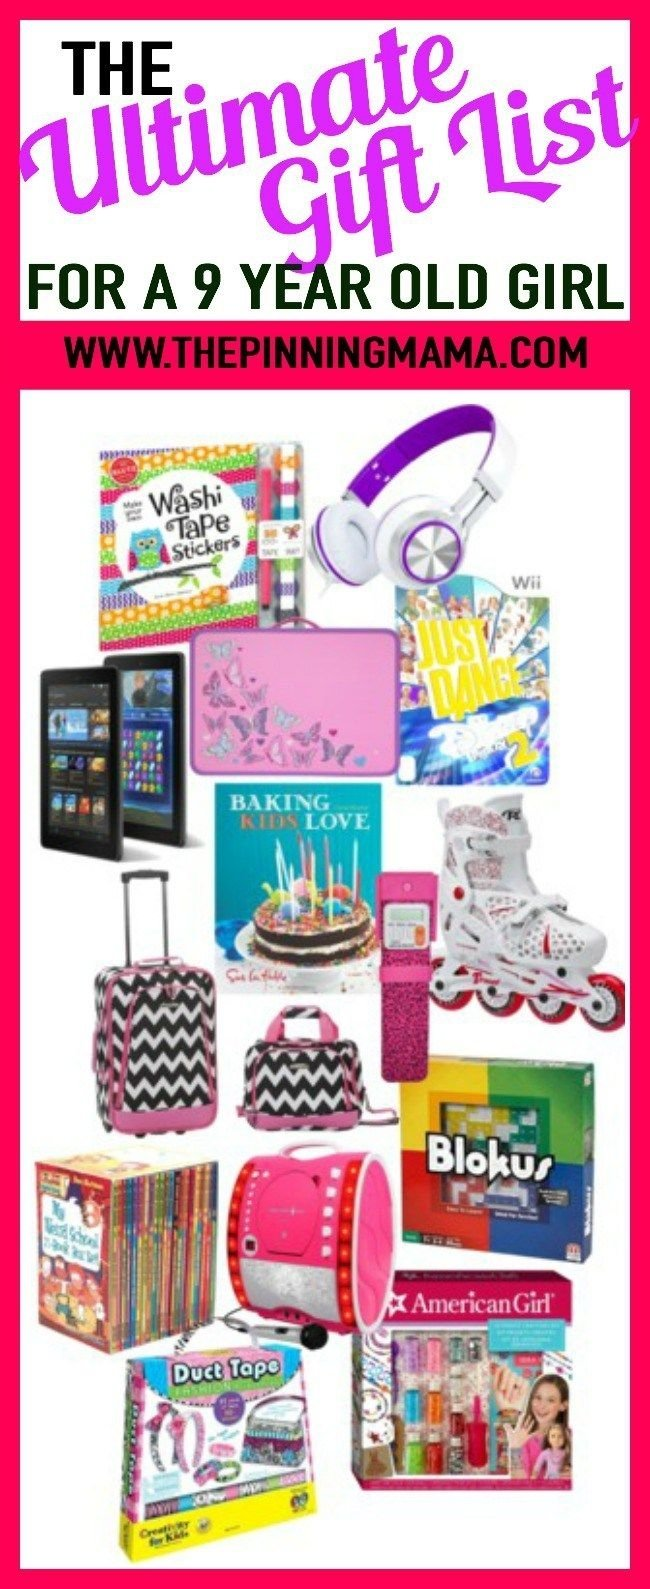 10 Most Popular Gift Ideas For 11 Yr Old Girl the ultimate gift list for a 9 year old girl top toys girls age 9 10 2020